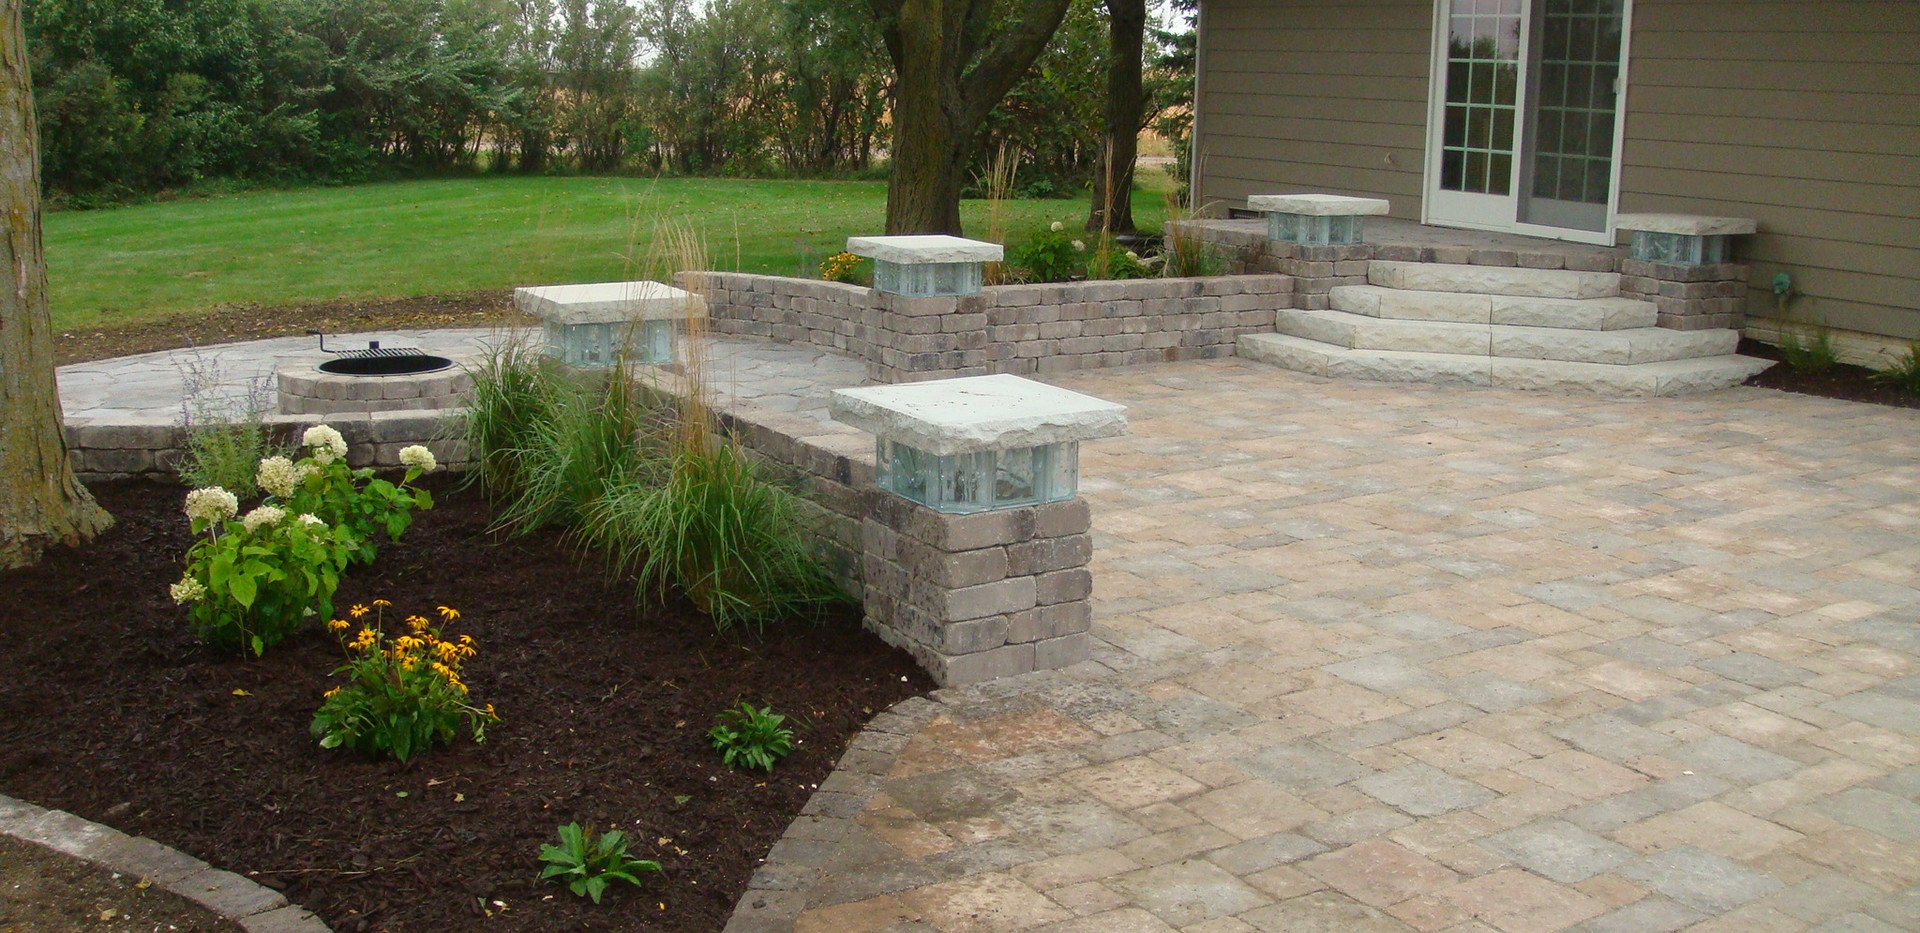 Backyard Patio with Landscape Beds